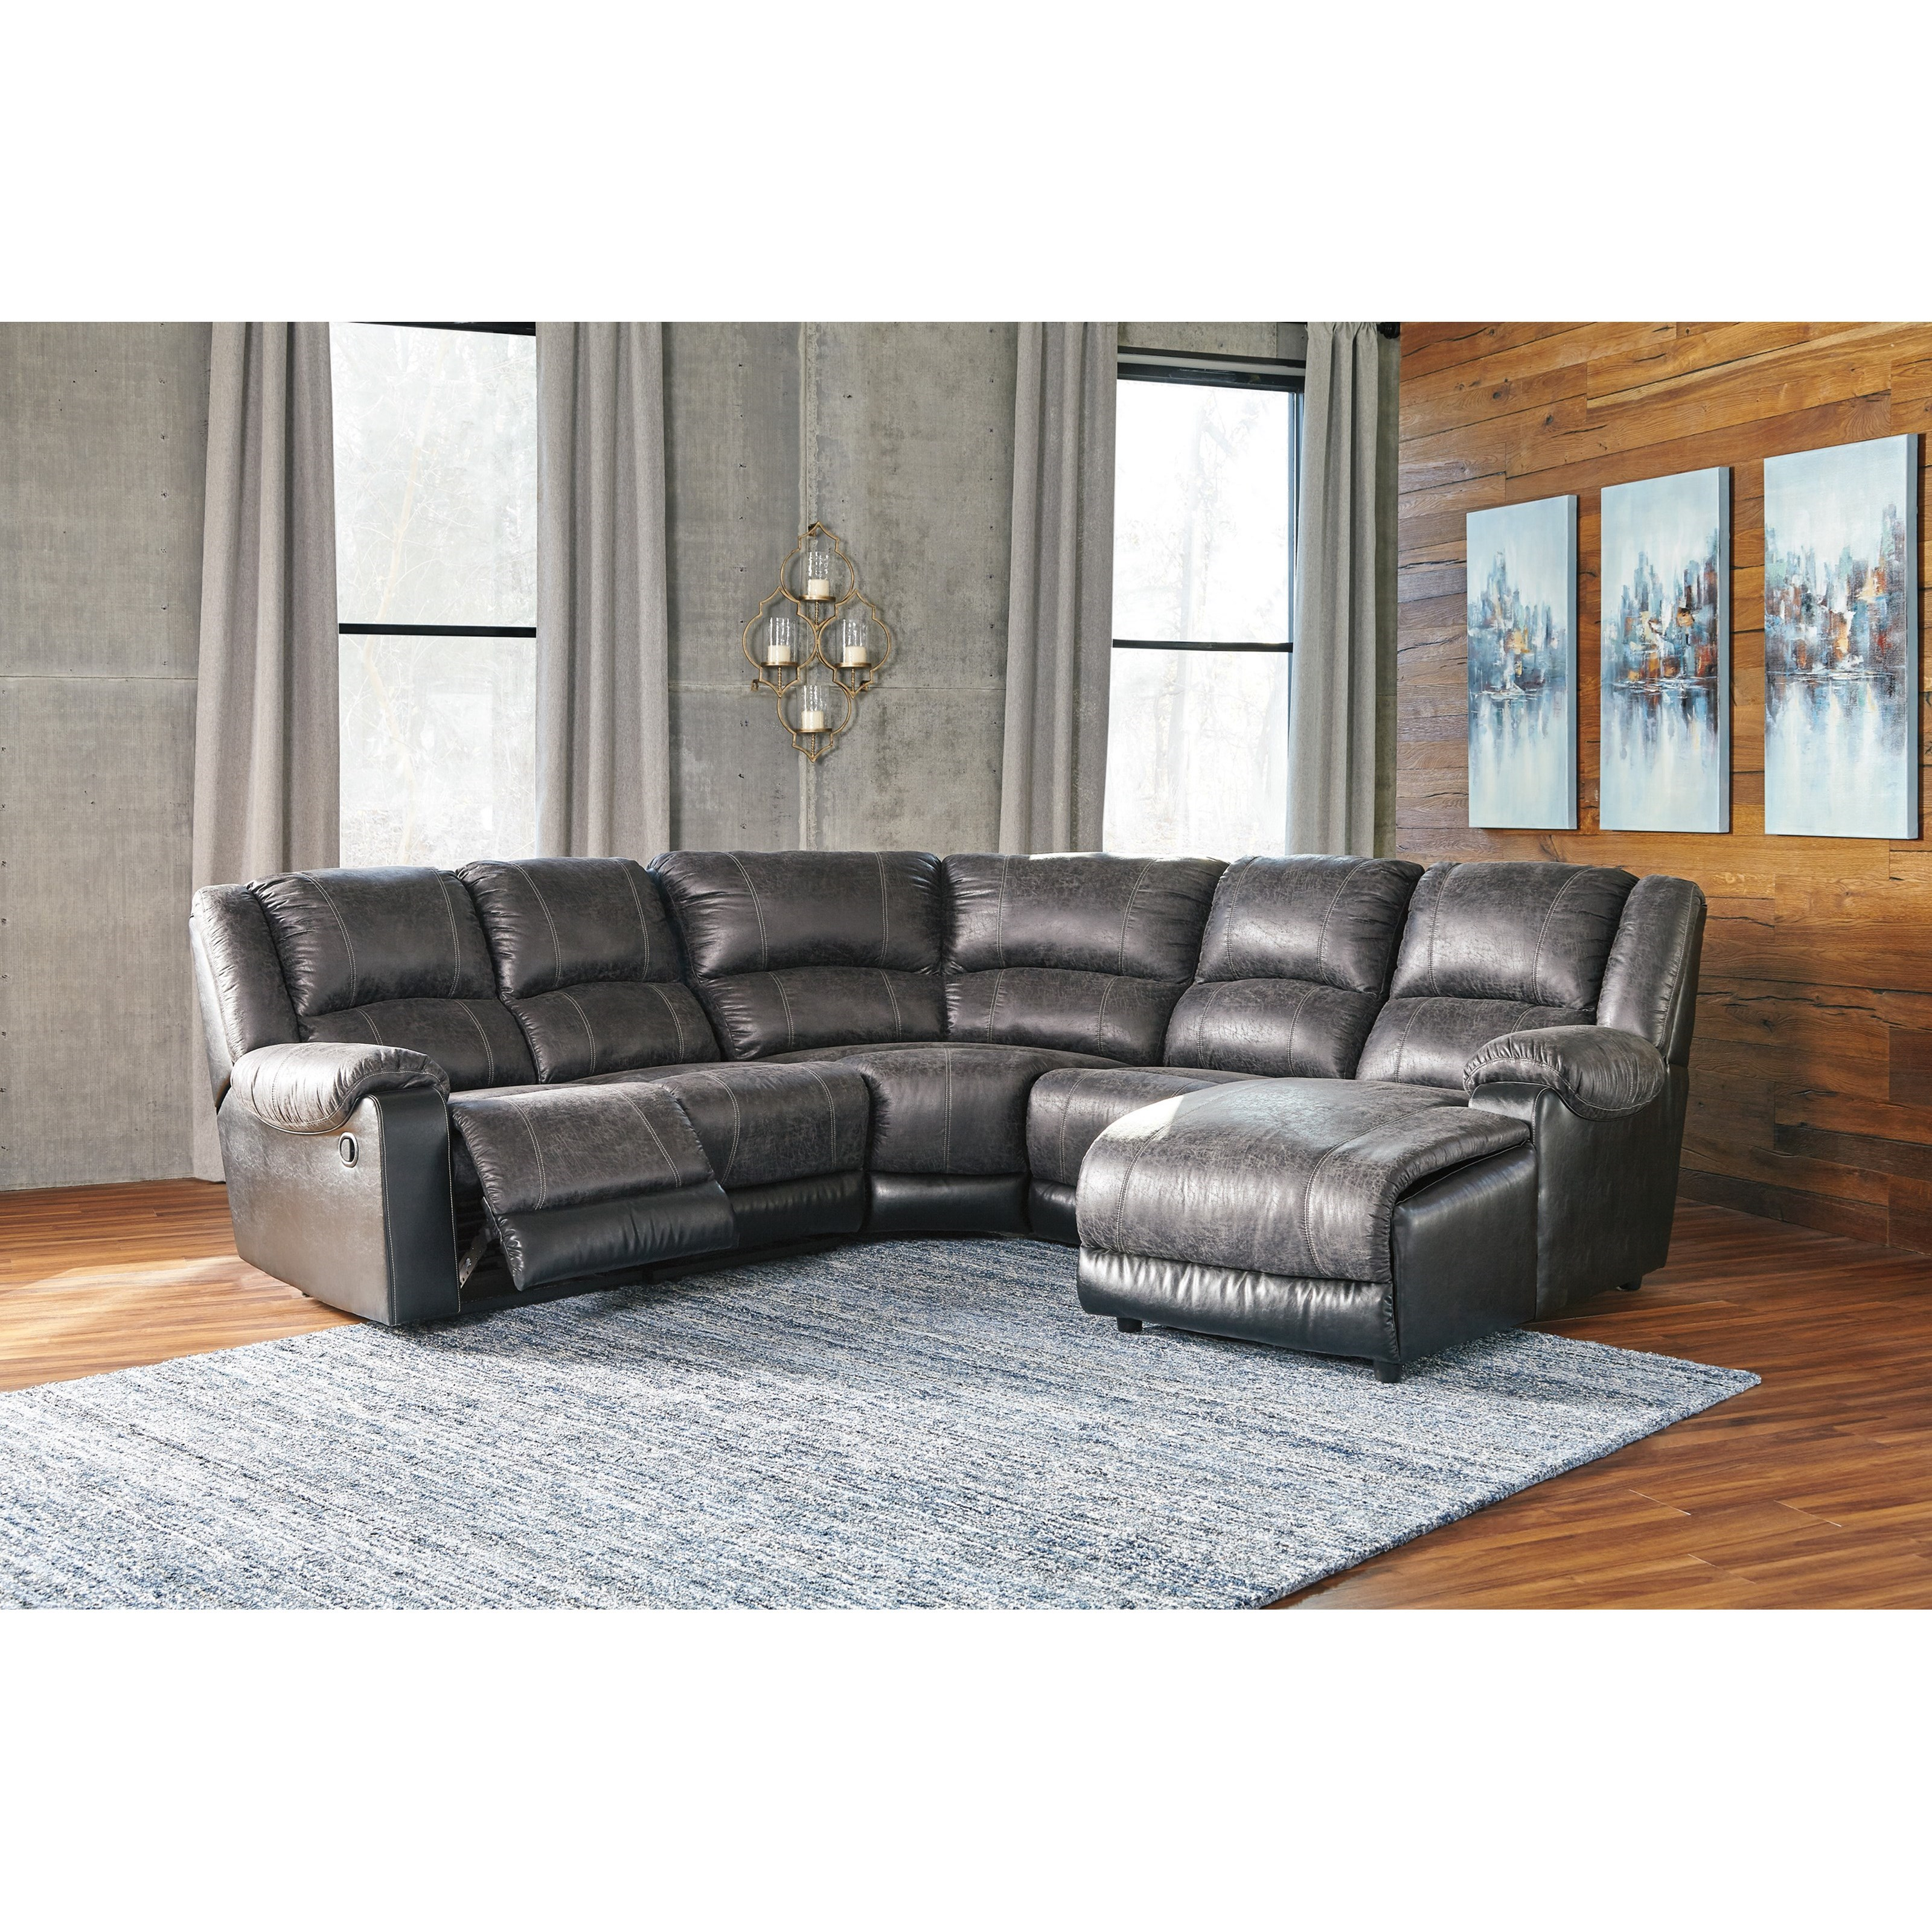 Signature Design By Ashley Nantahala Faux Leather Reclining Sectional With Chaise Royal